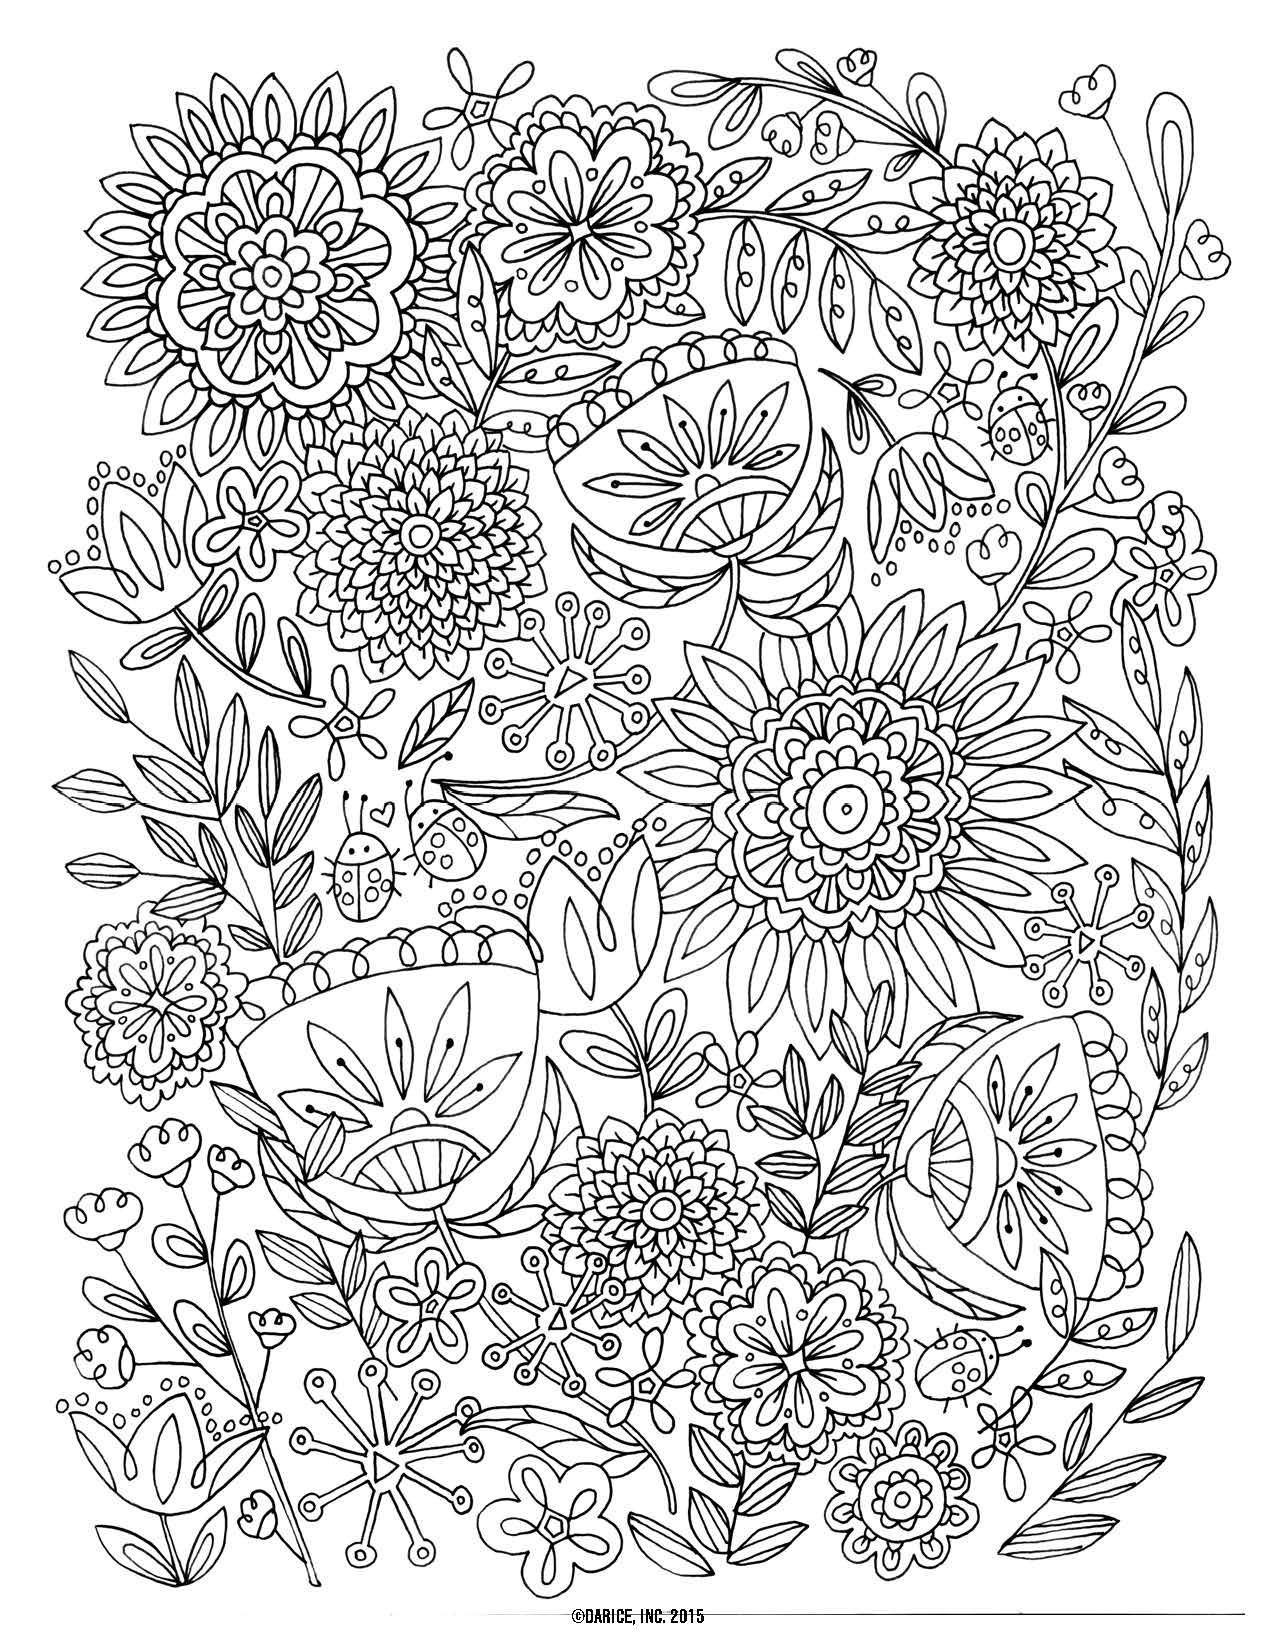 Flower Vase Food Of 23 Flowers In A Vase the Weekly World with Regard to Cool Vases Flower Vase Coloring Page Pages Flowers In A top I 0d